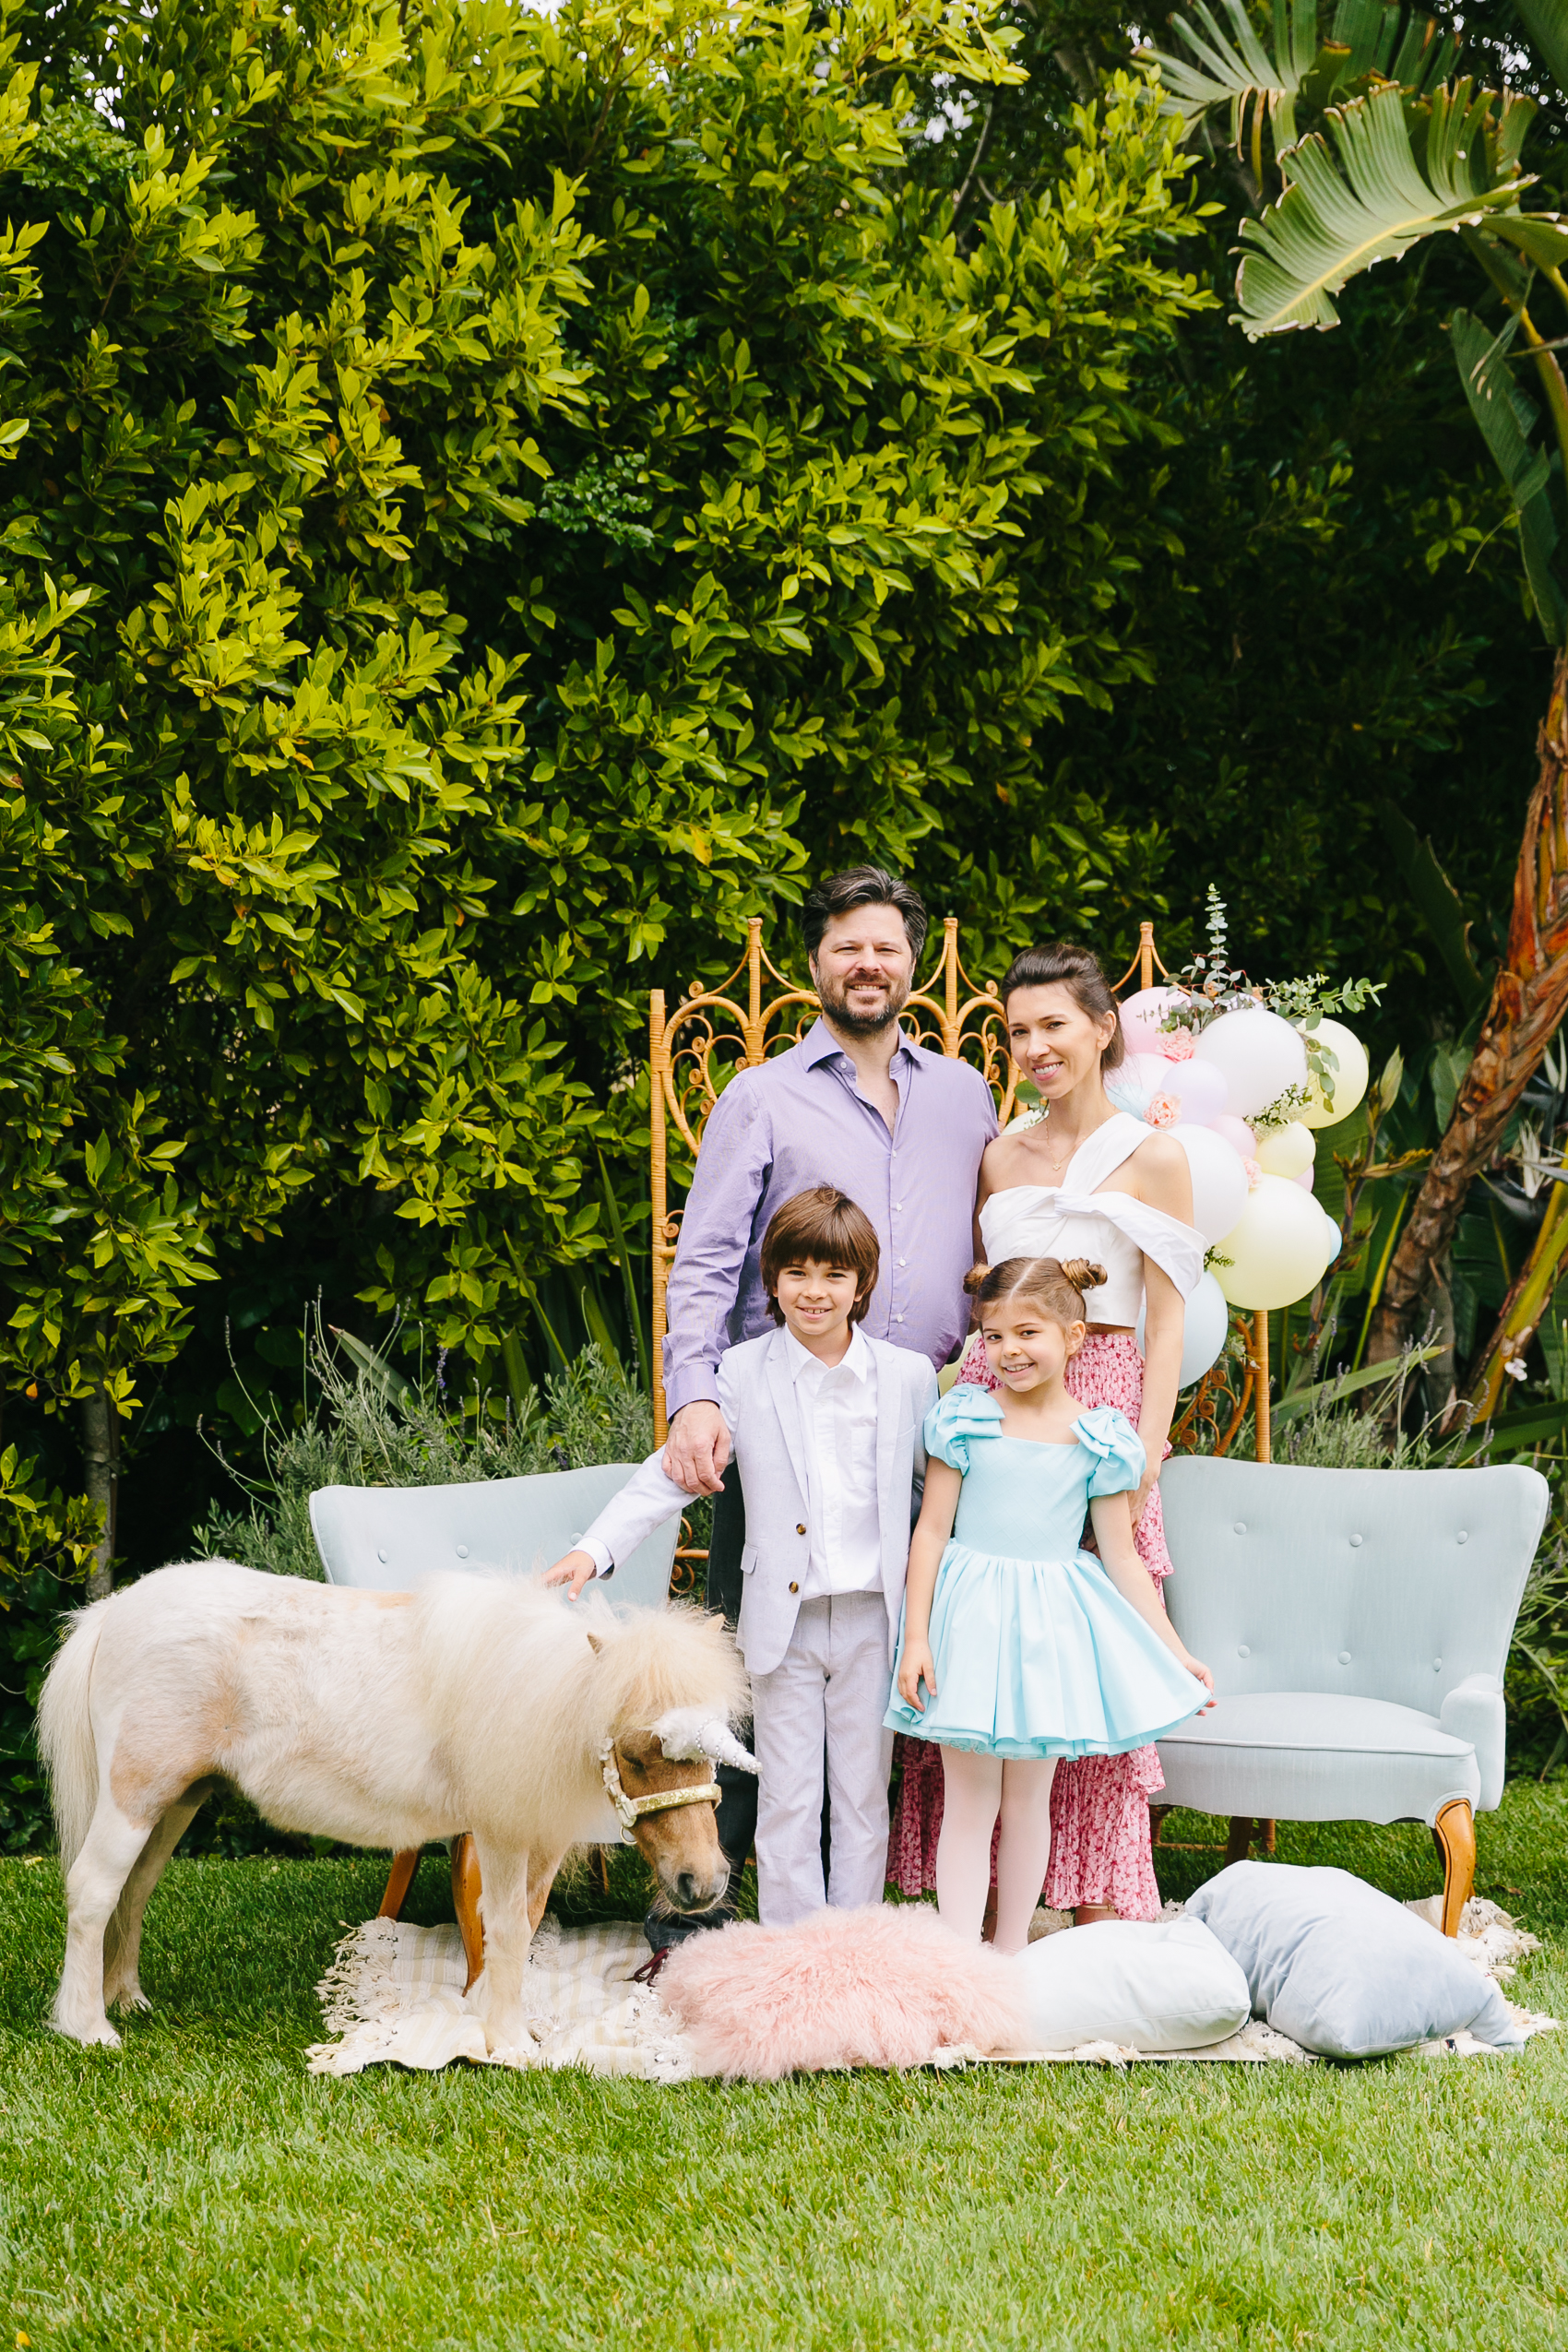 Los_Angeles_Family_Photographer_Luxury_Childrens_Party_Beverly_Hills_Unicorn_Birthday_Party-0326.jpg